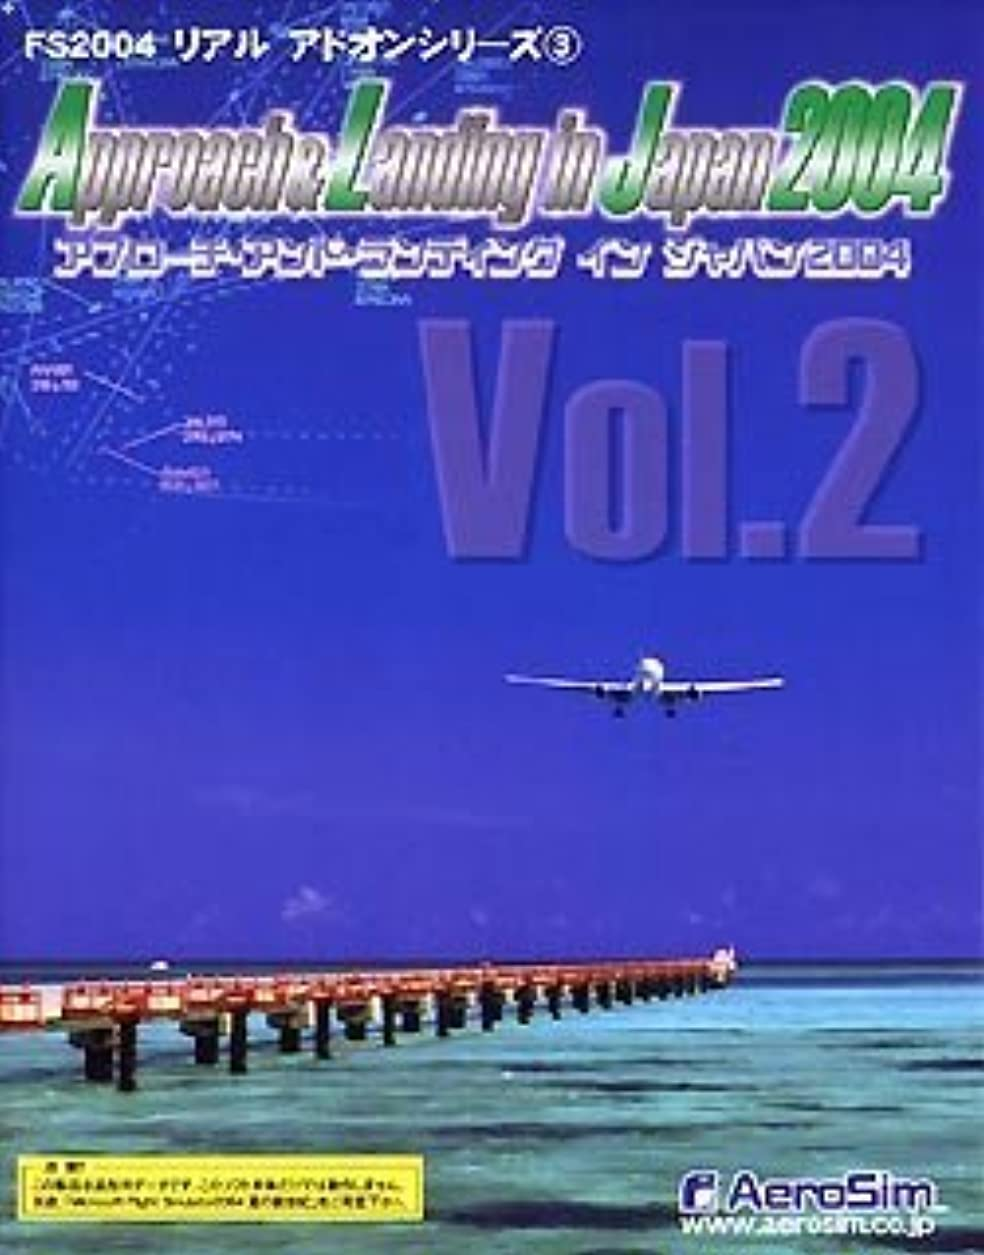 省略留まる基本的なApproach & Landing in Japan 2004 Vol.2